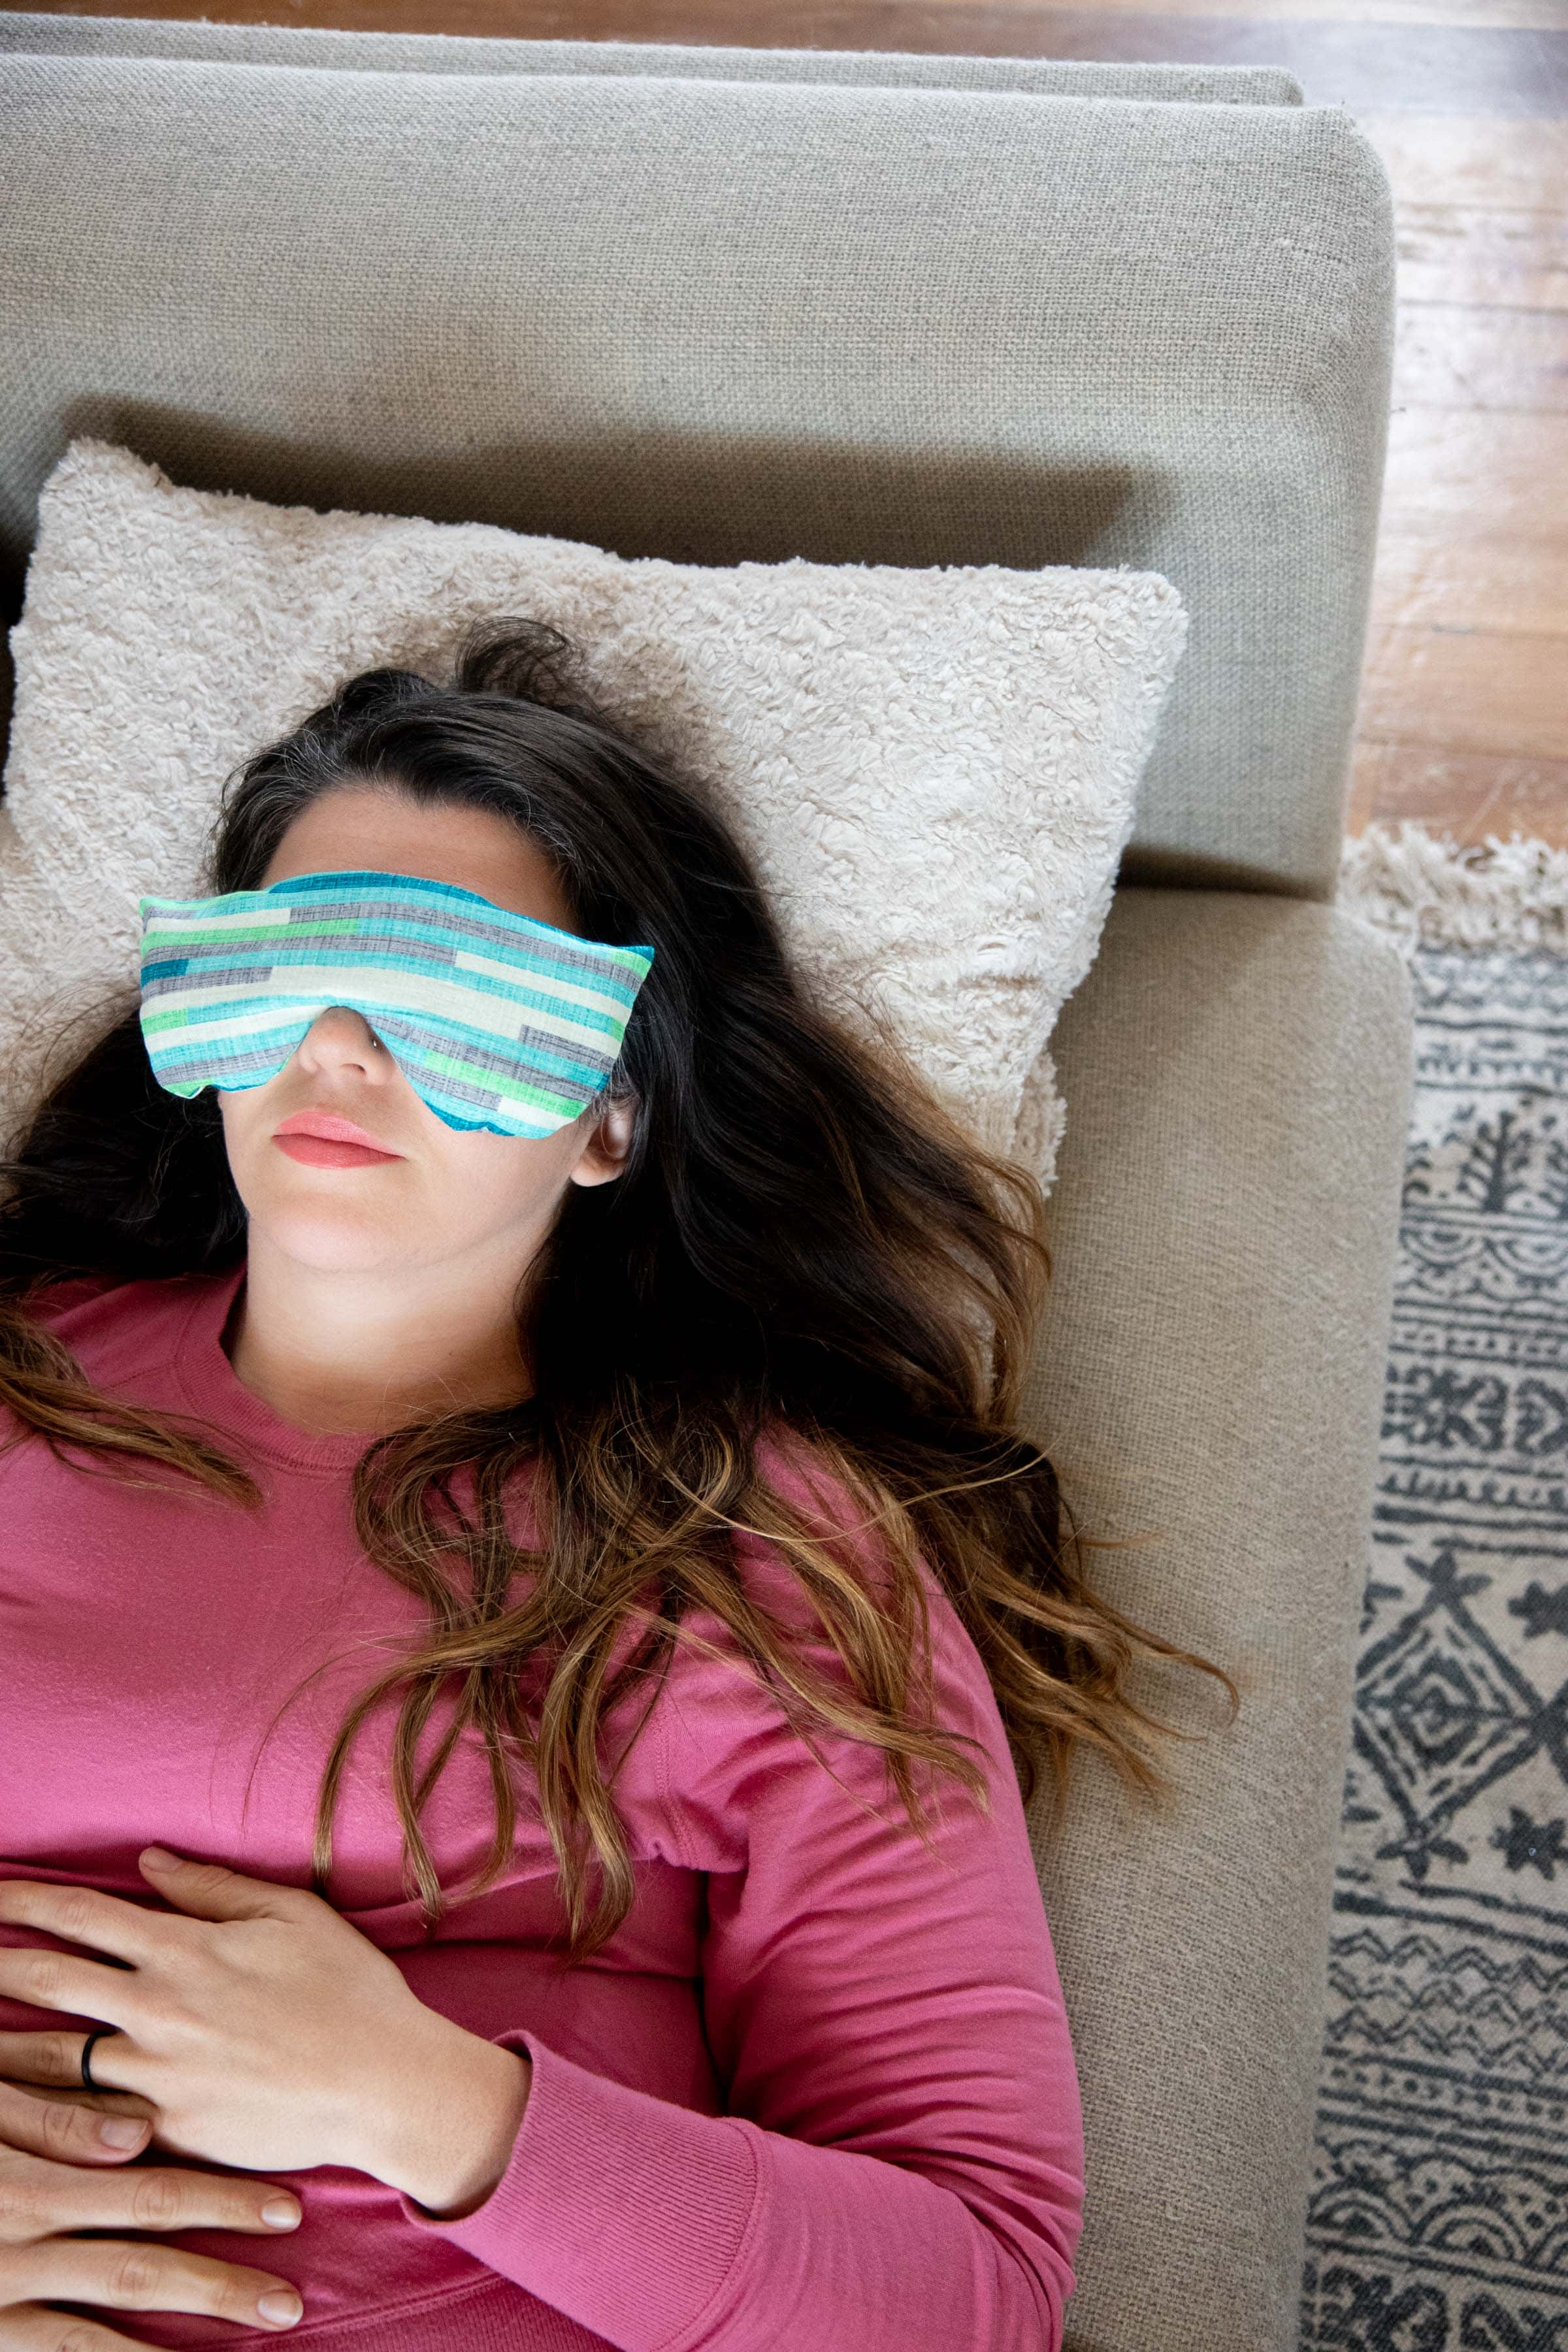 Brunette woman in a pink shirt lying on a grey couch with a Soothing Headache Eye Masks over her eyes